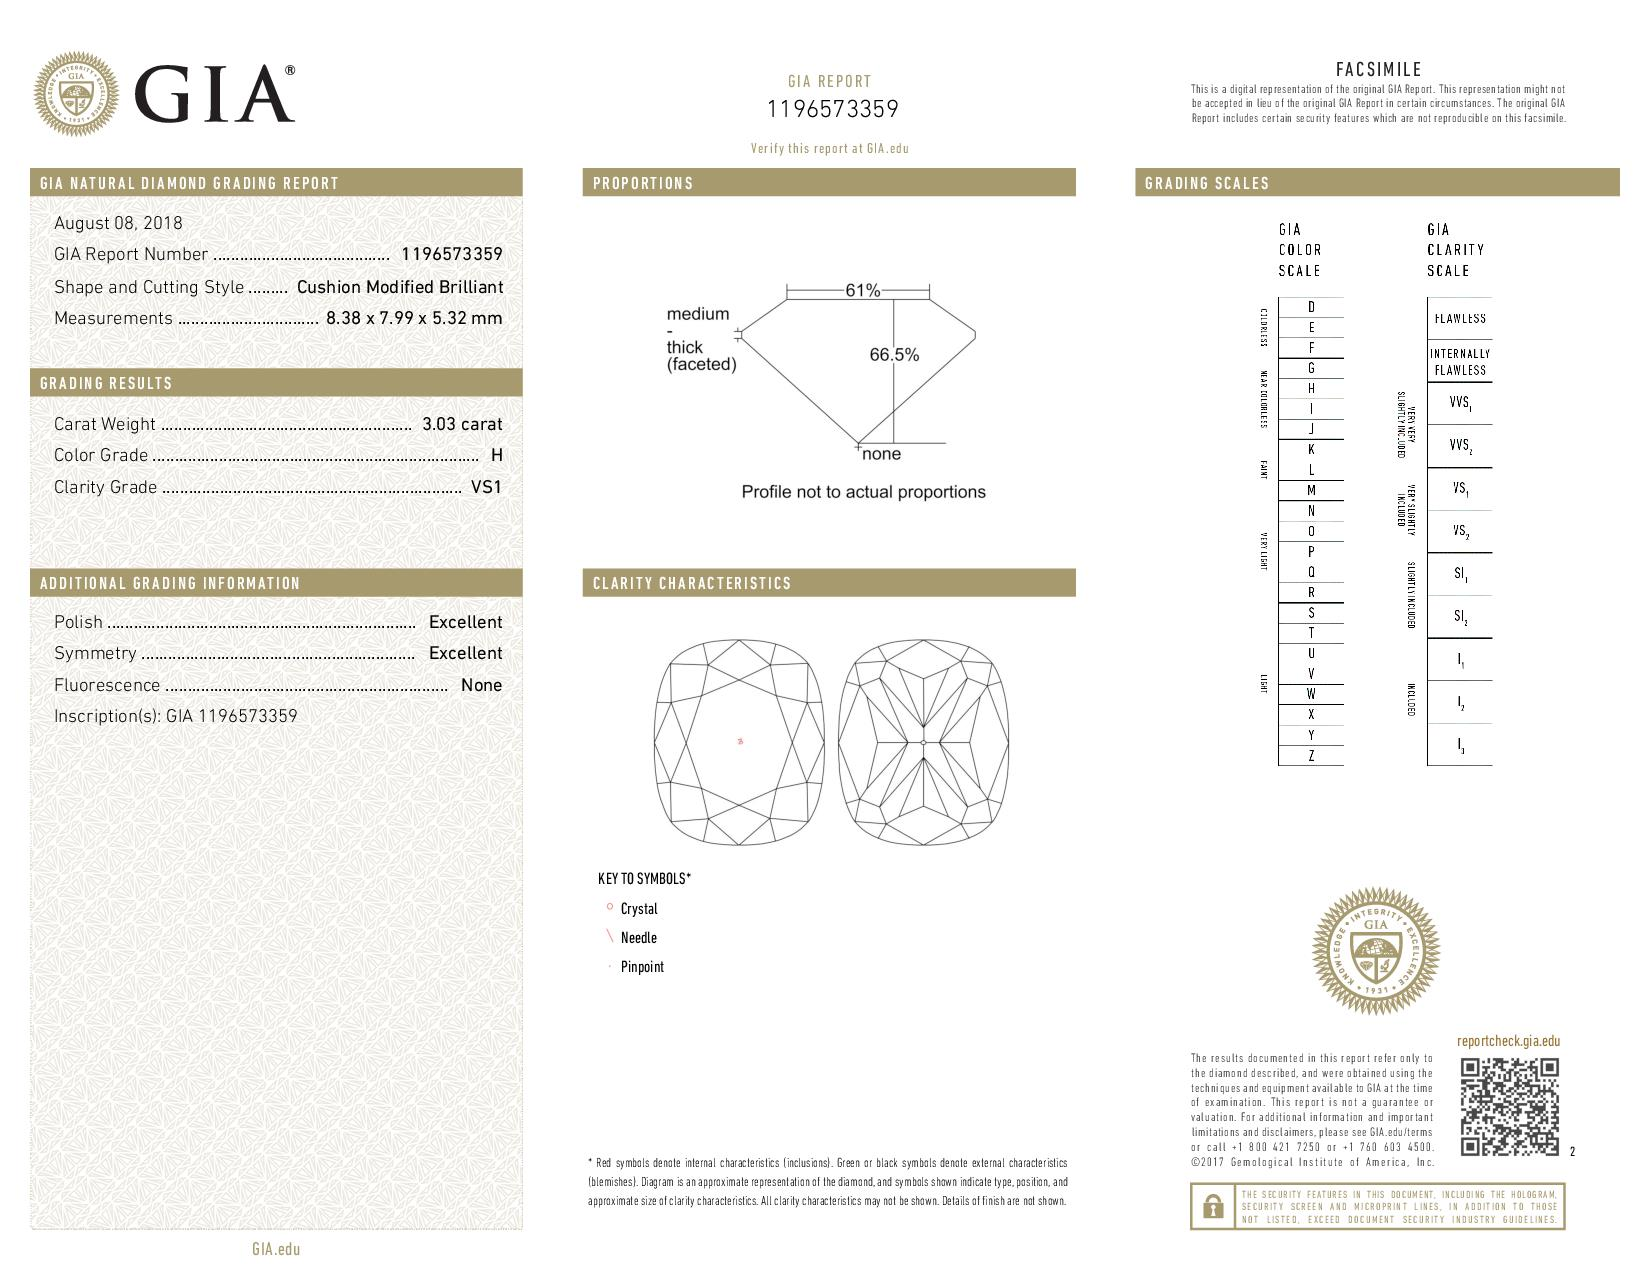 This is a 3.03 carat cushion shape, H color, VS1 clarity natural diamond accompanied by a GIA grading report.